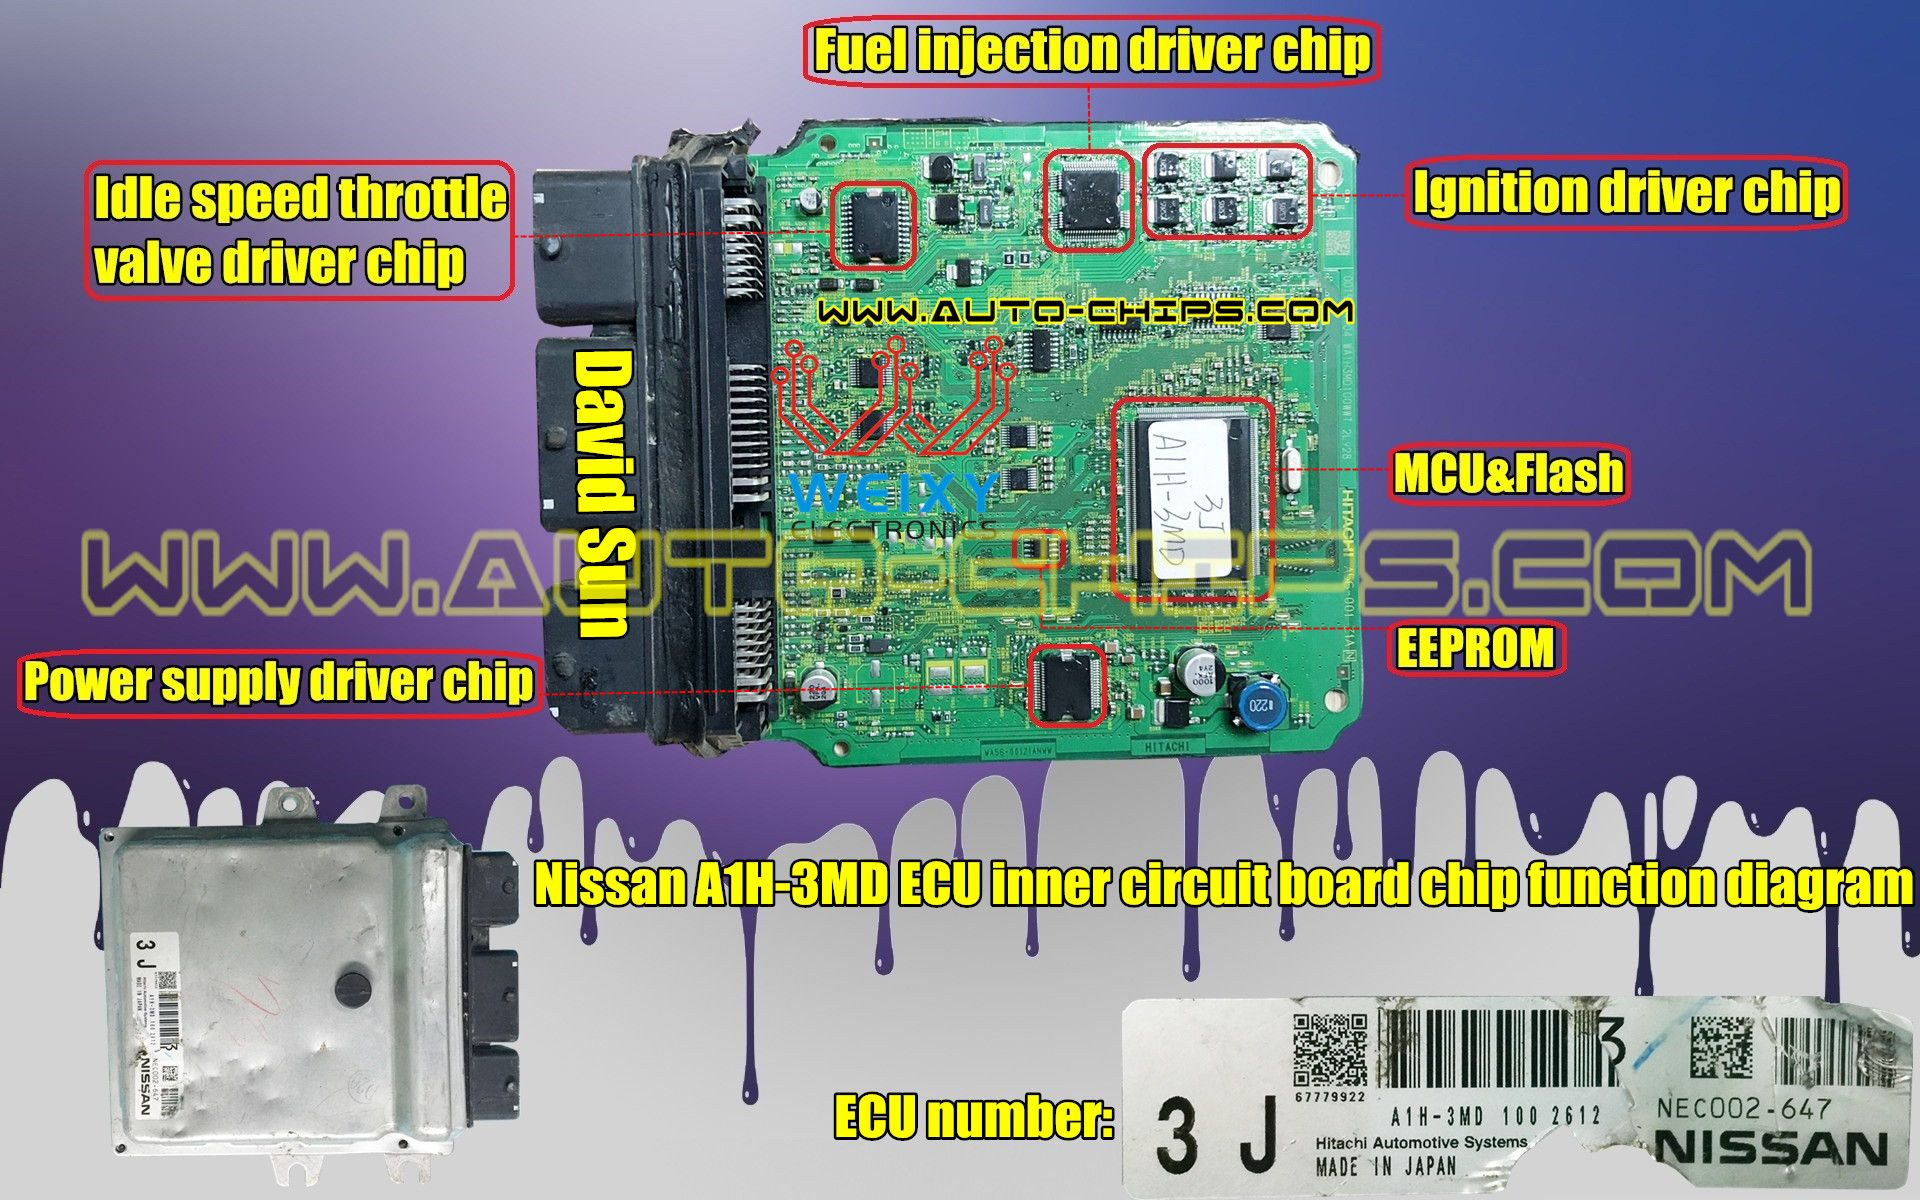 medium resolution of nissan a1h 3md ecu inner circuit board chip function diagram we supply all kinds of